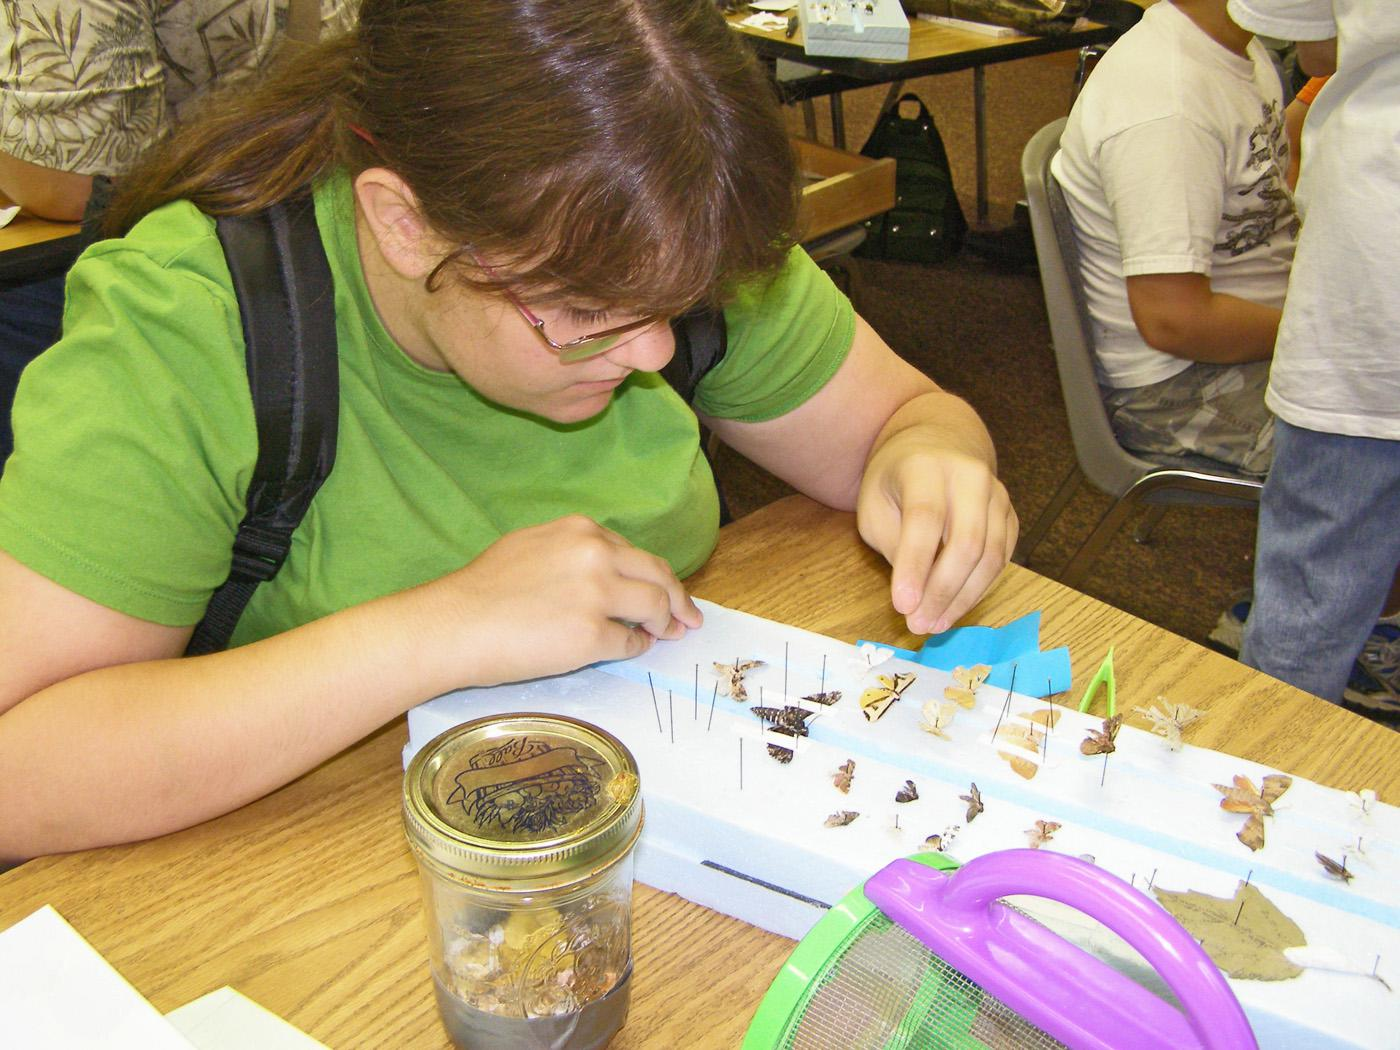 Deanna Lyle, of Aberdeen, uses pins and a spreading board to dry specimens for her insect collection. Lyle, who plans to be an entomologist, attended Mississippi State University's annual 4-H Entomology and Horticulture Camp in 2008. (Photo by MSU Wildlife and Fisheries/John Guyton)